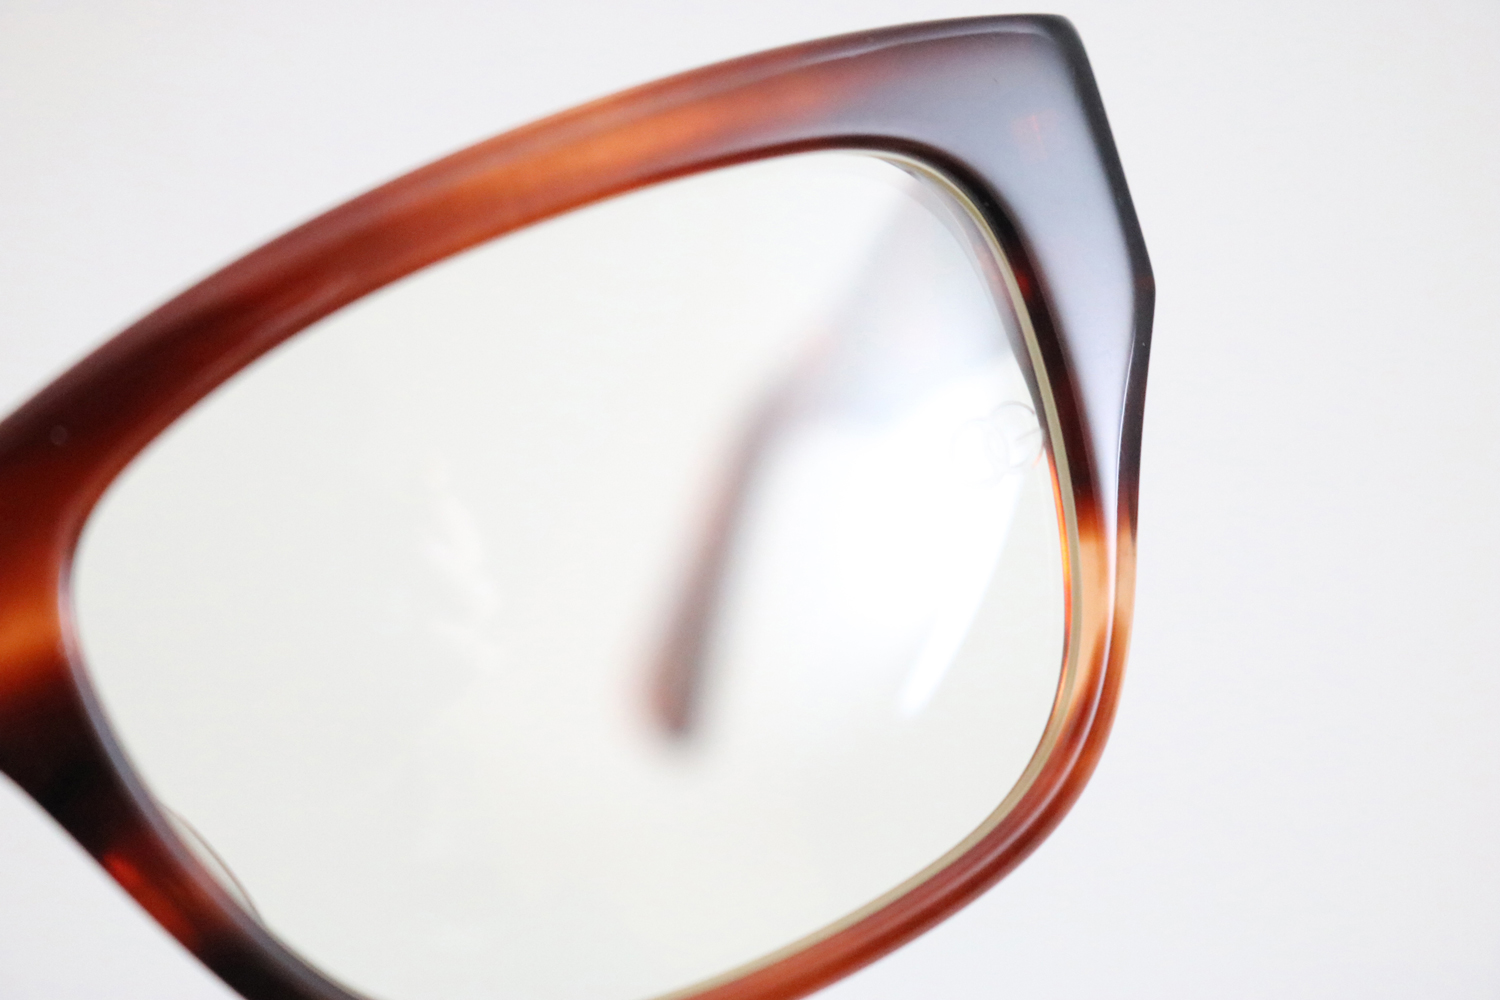 CONSUL-s CELLULOID - RD|OLIVER GOLDSMITH